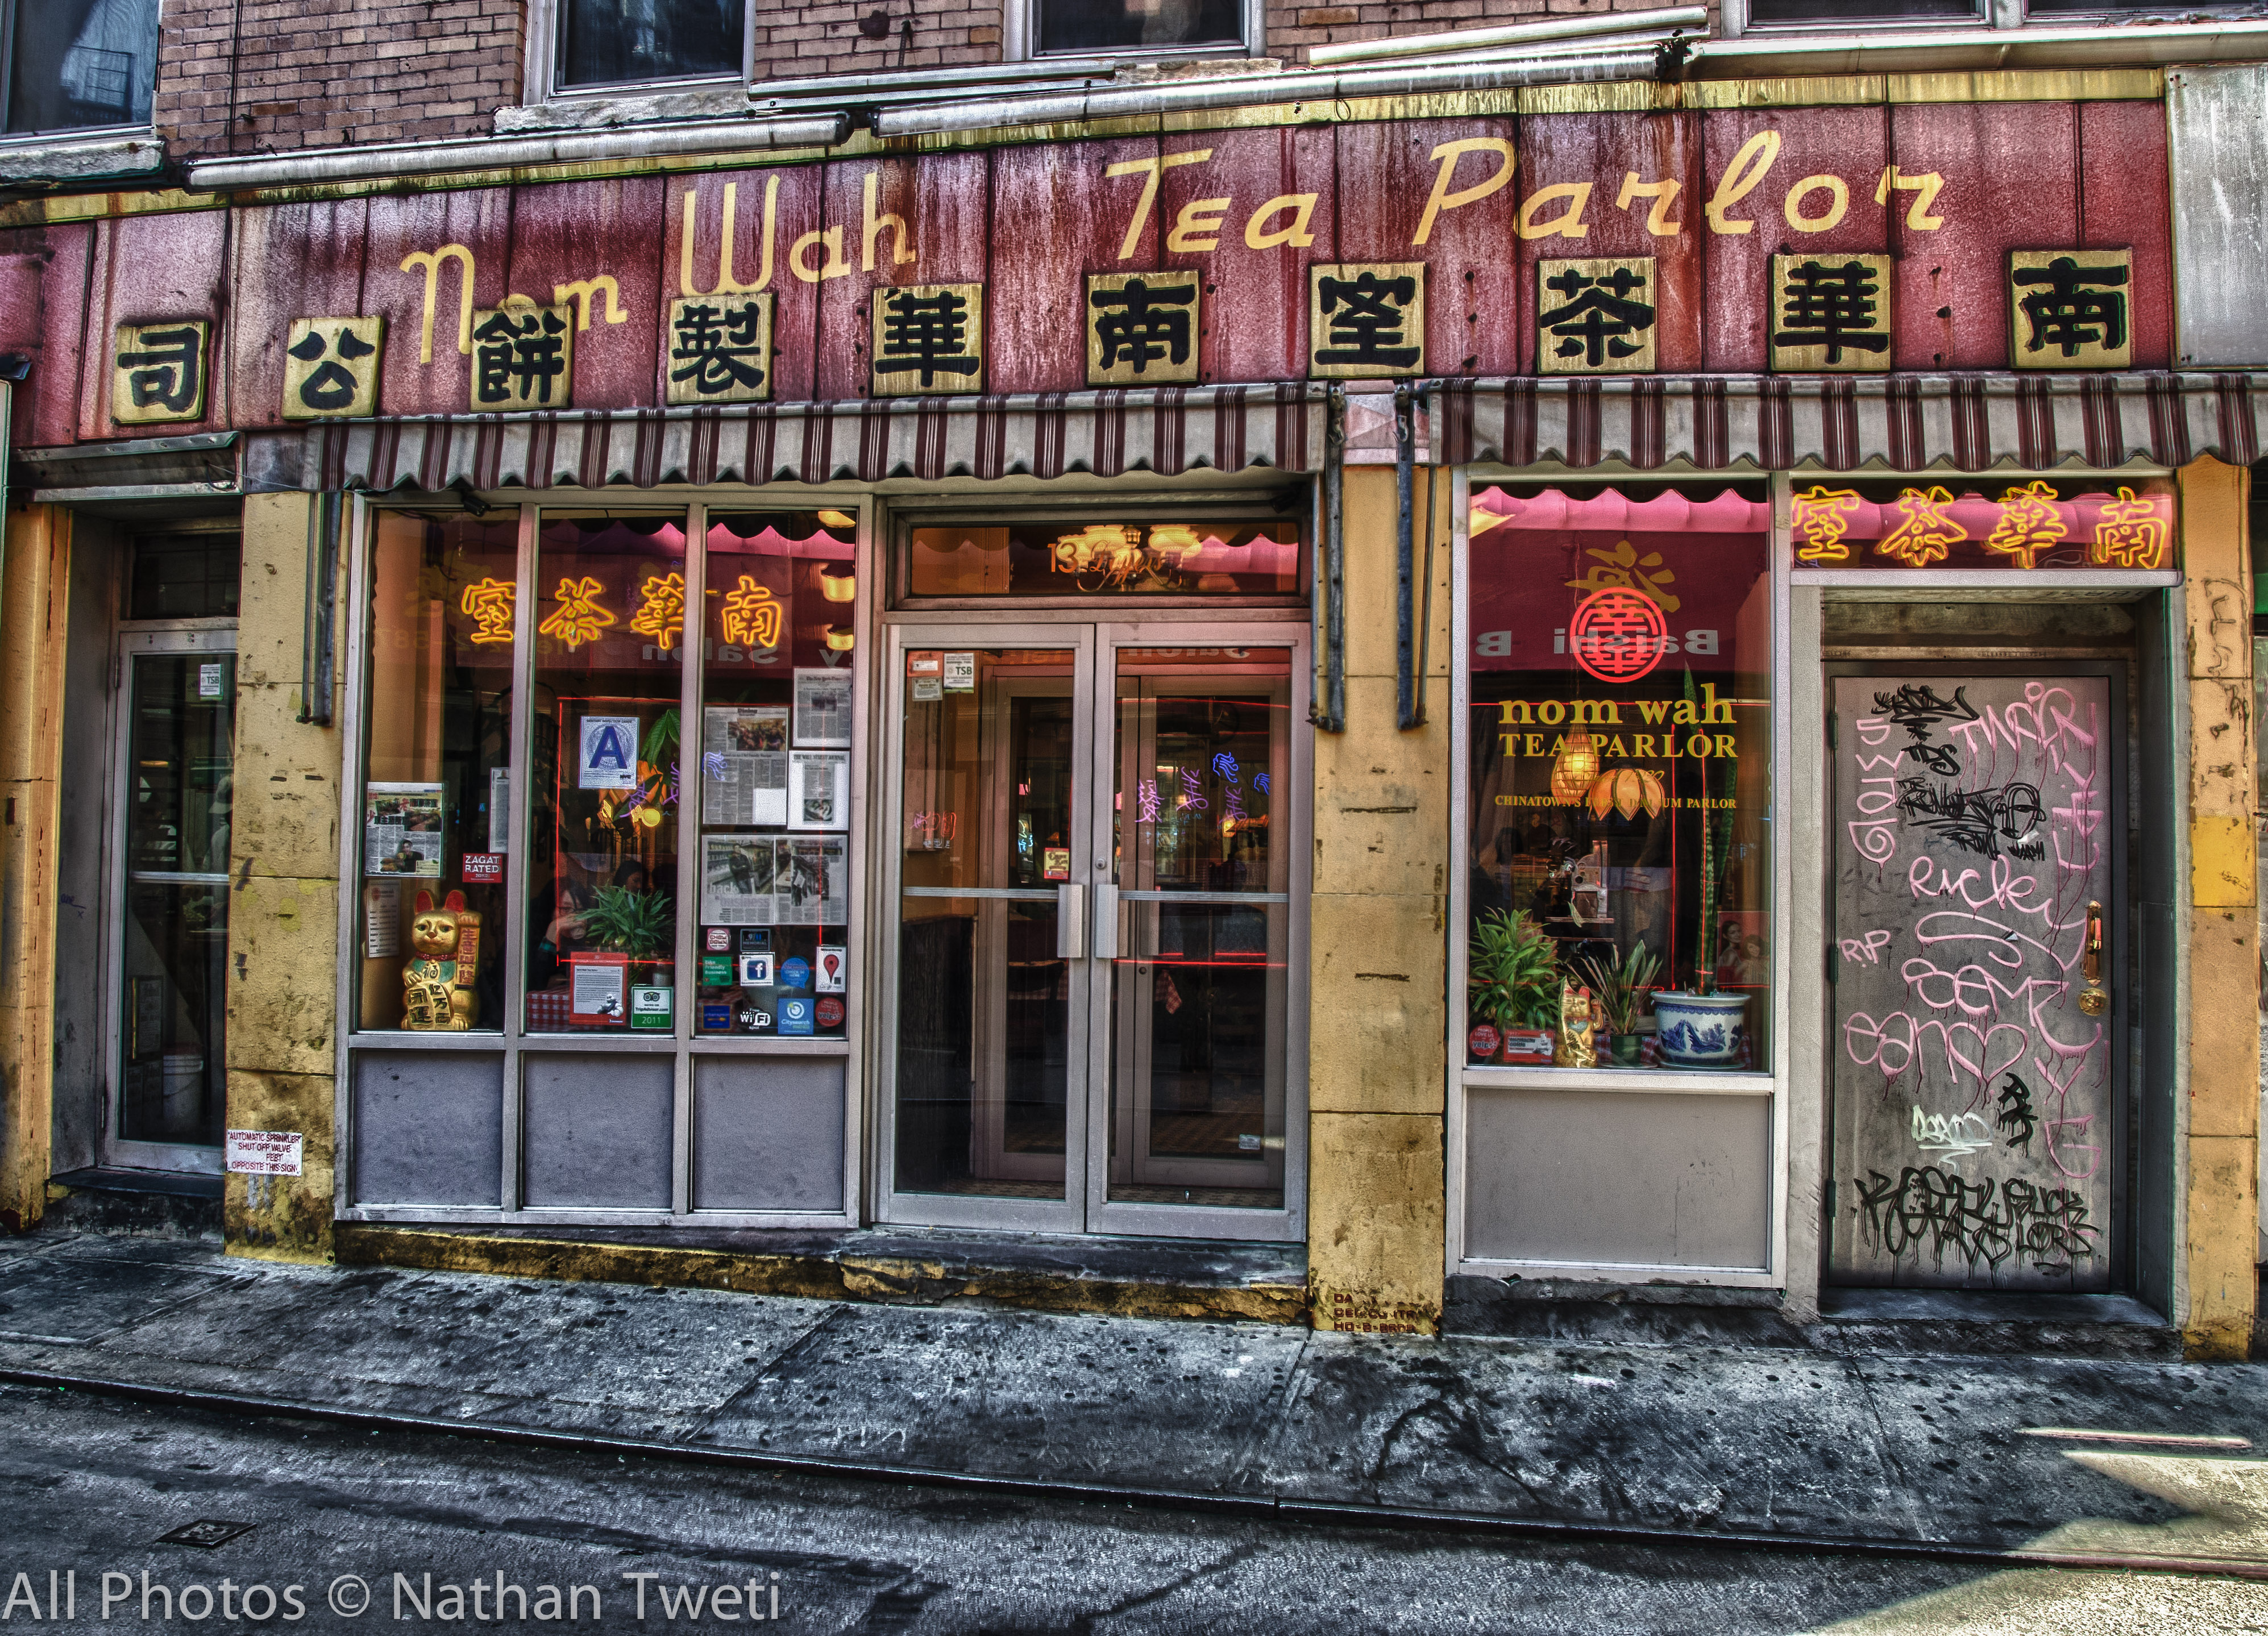 Nom Wah Tea Parlor 004 HDR Chinatown & Little Italy in New York City